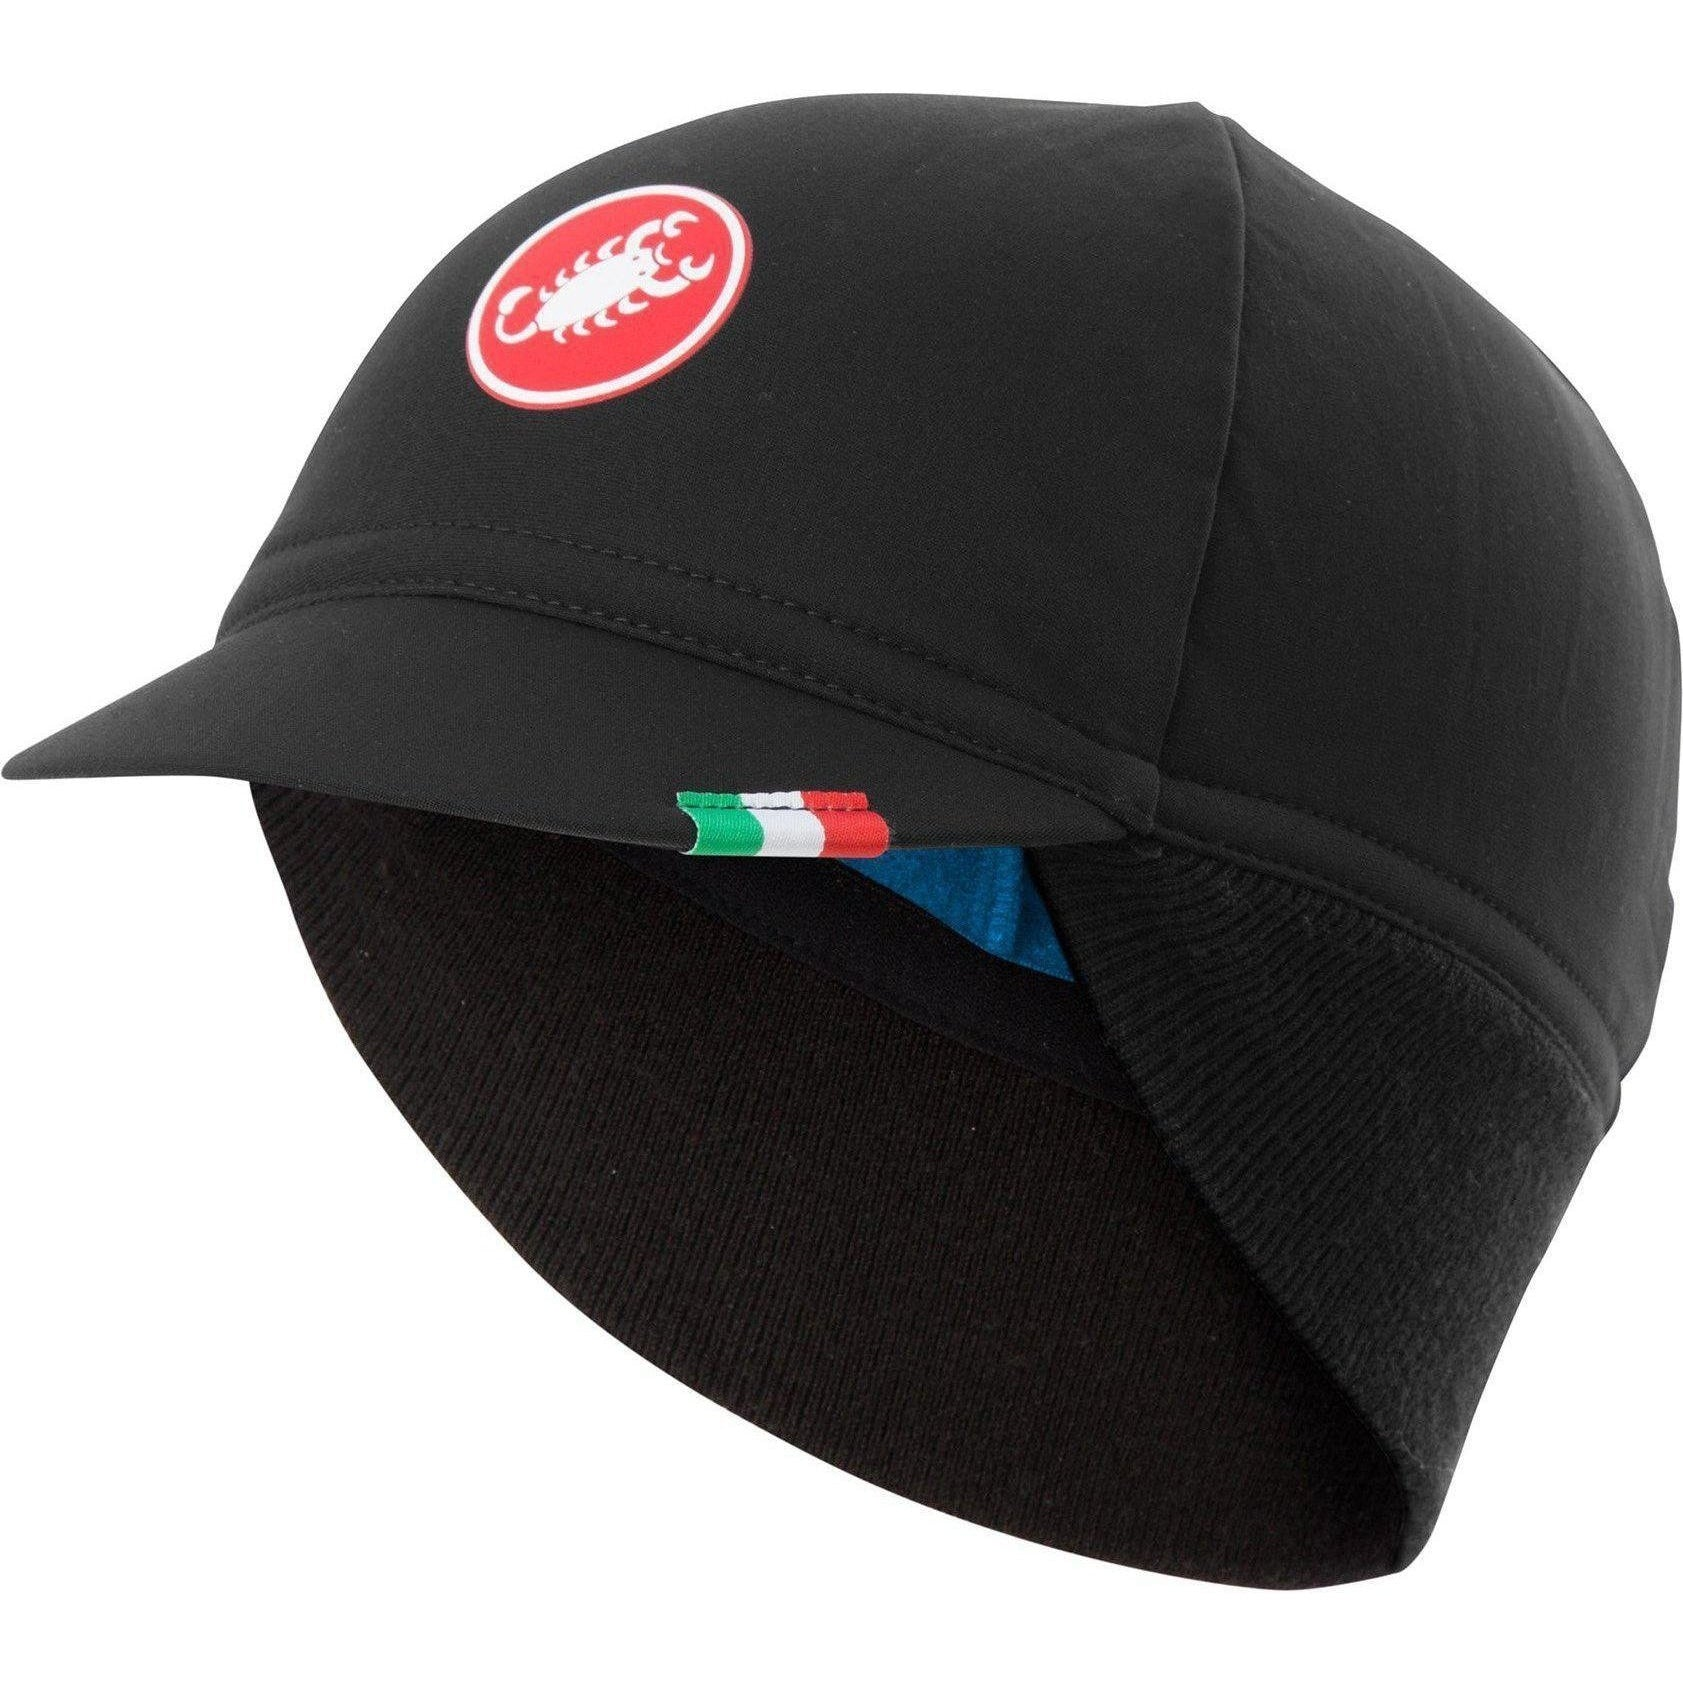 Castelli-Castelli Difesa Thermal Cap-Black/Red-UNI-CS185340108-saddleback-elite-performance-cycling